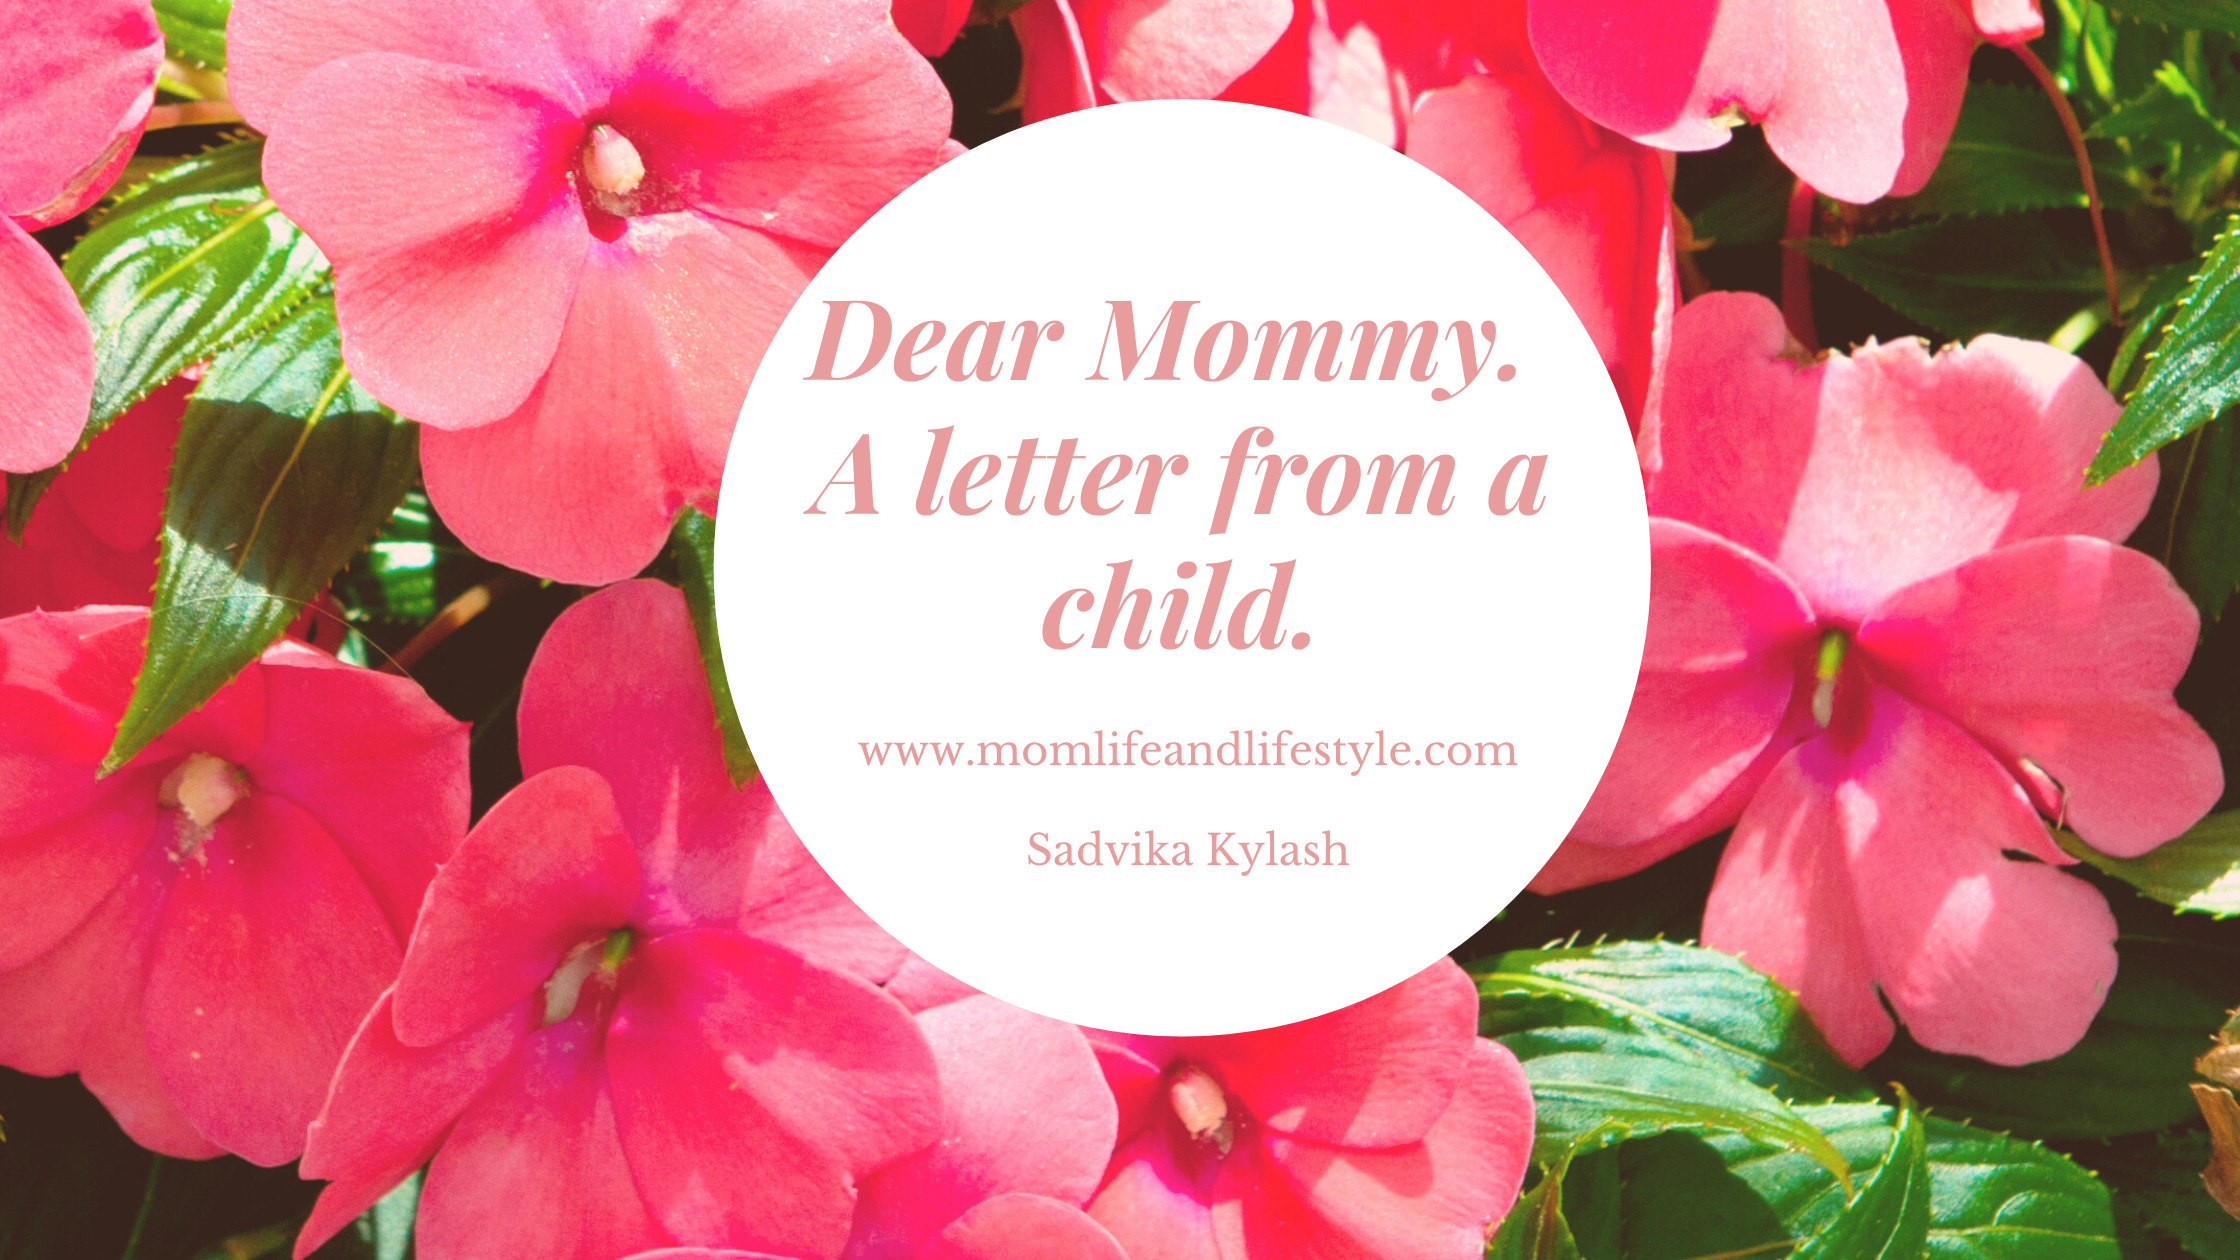 Dear Mommy. A letter from a child.